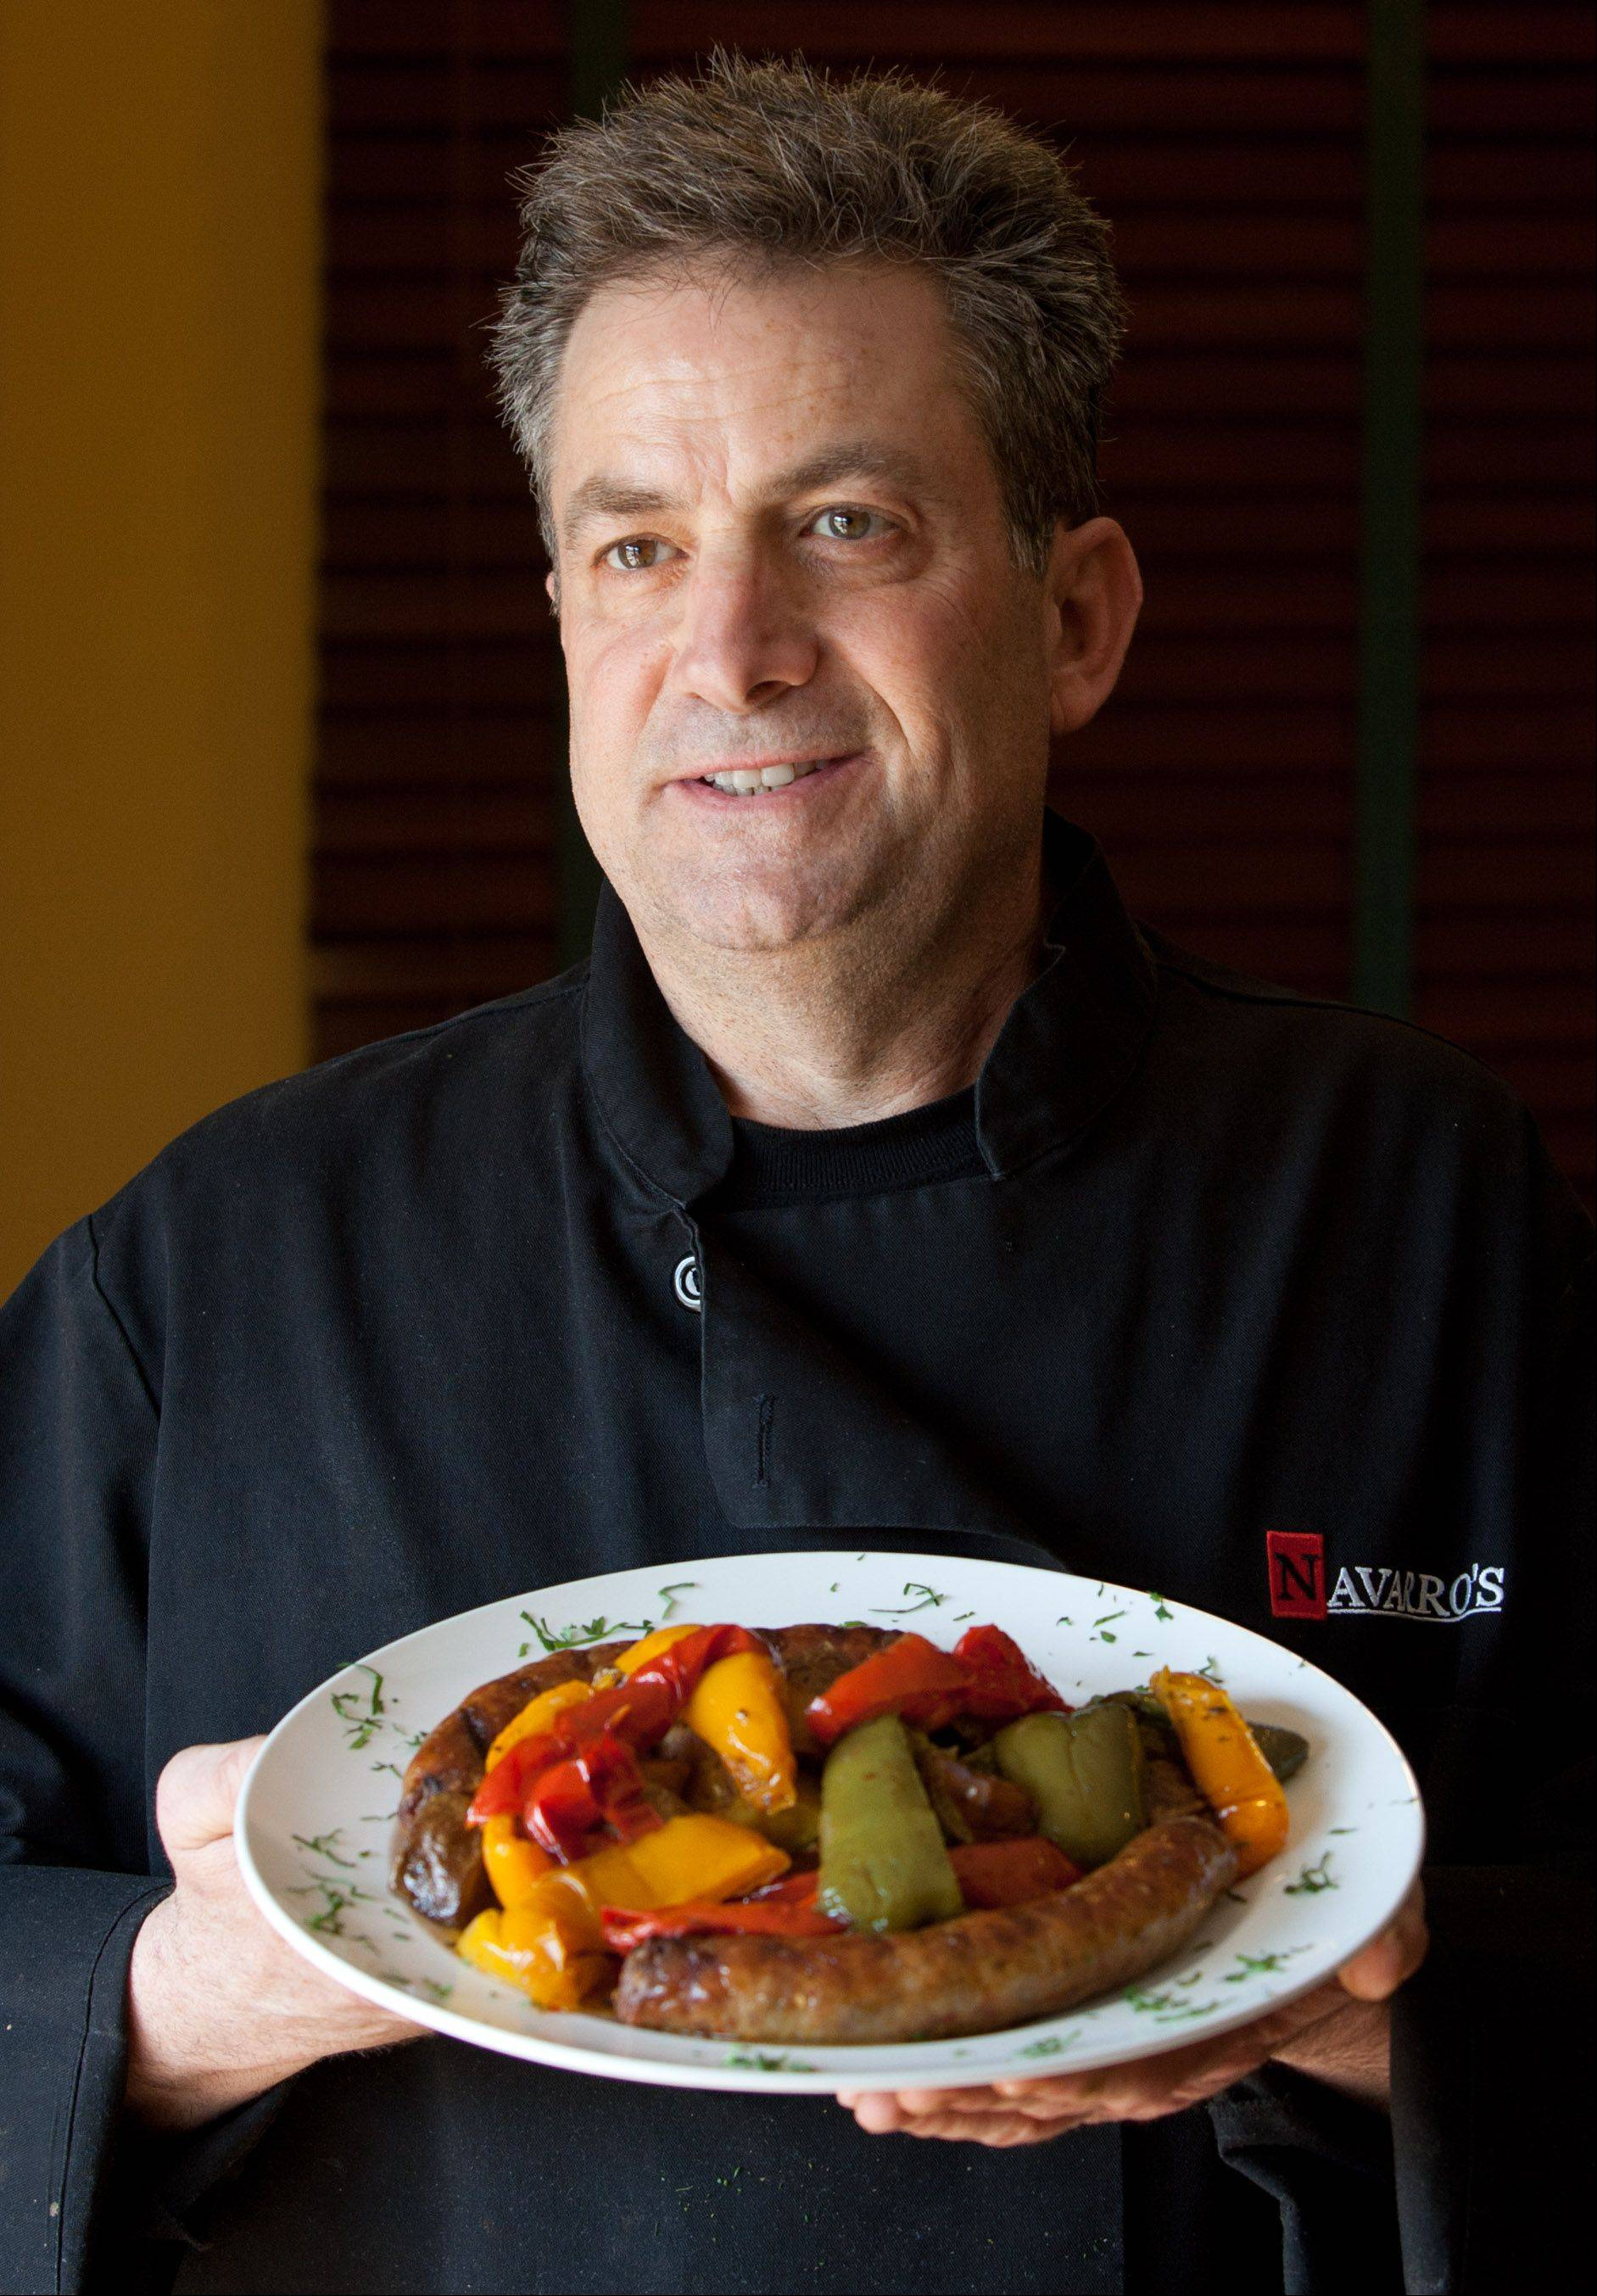 Chef Jerry Navarro runs the kitchen at Navarro's of Naperville, a casual Italian eatery tucked into the clubhouse at Country Lakes Golf Course.